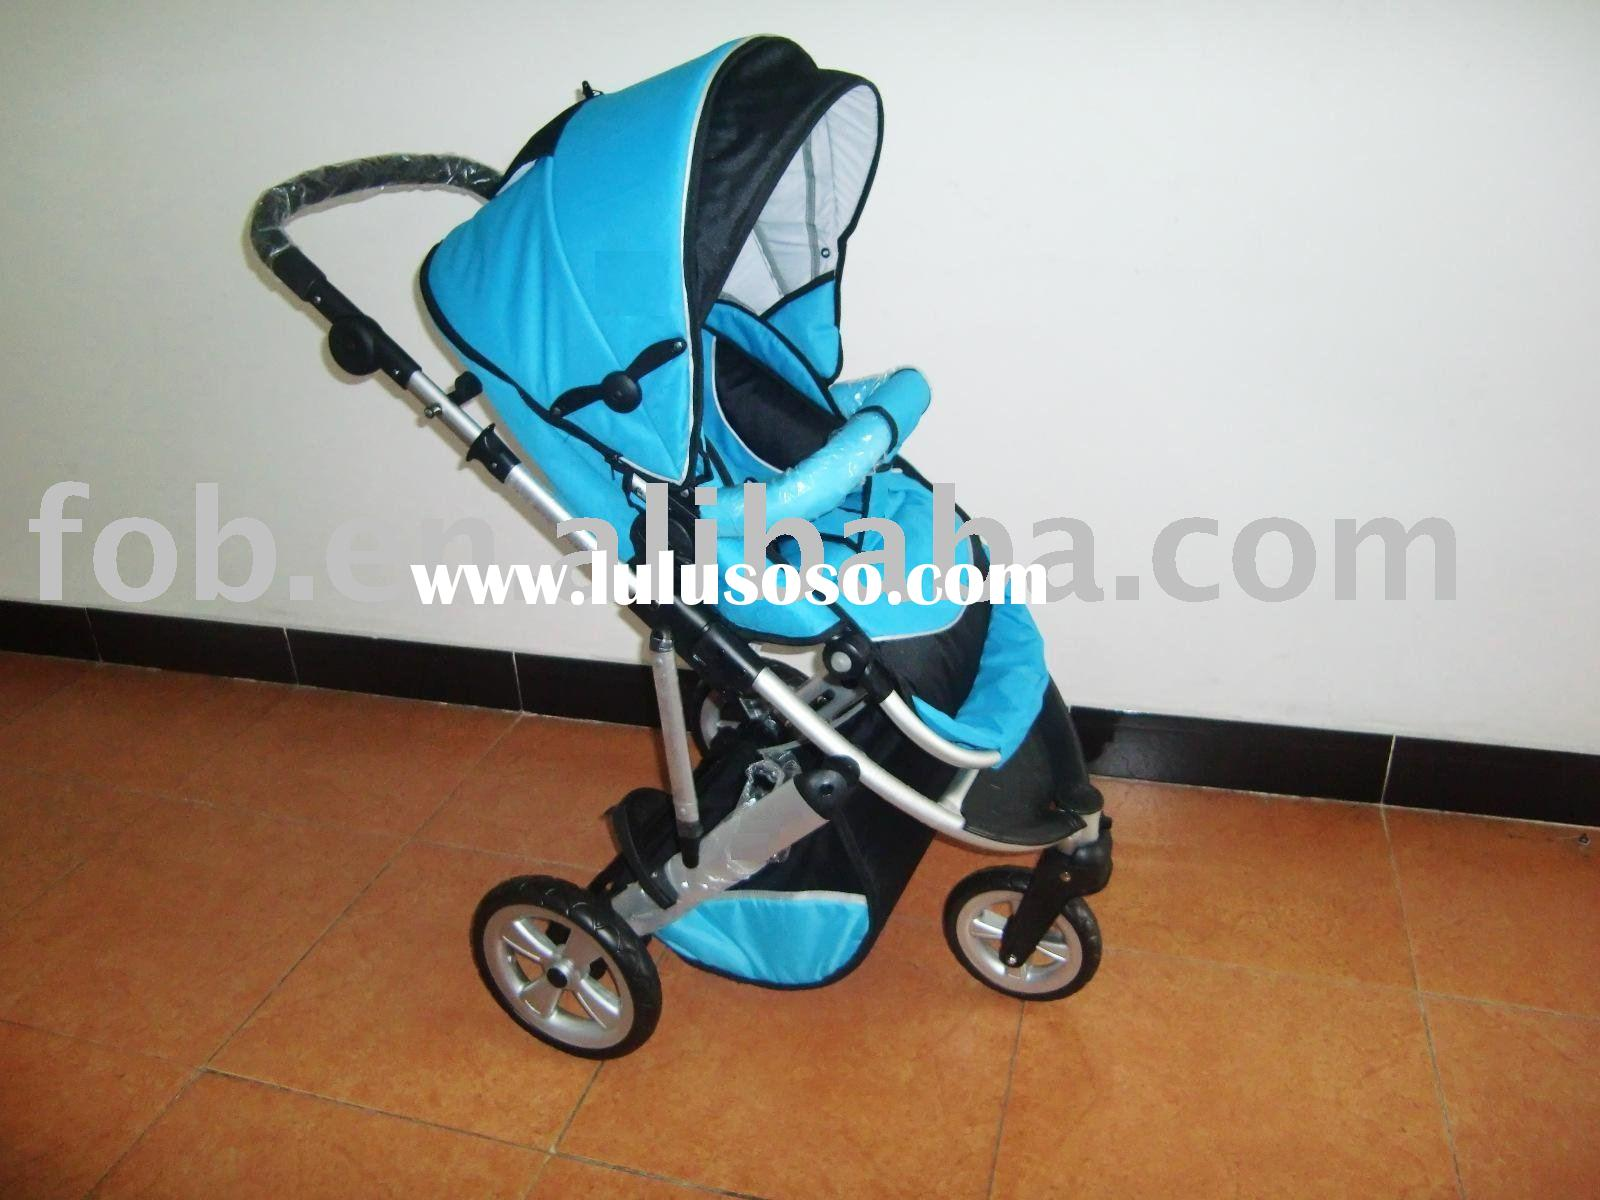 baby stroller,baby walker,baby carrier,baby travel systems,baby seats,baby prams,baby car safety,bab